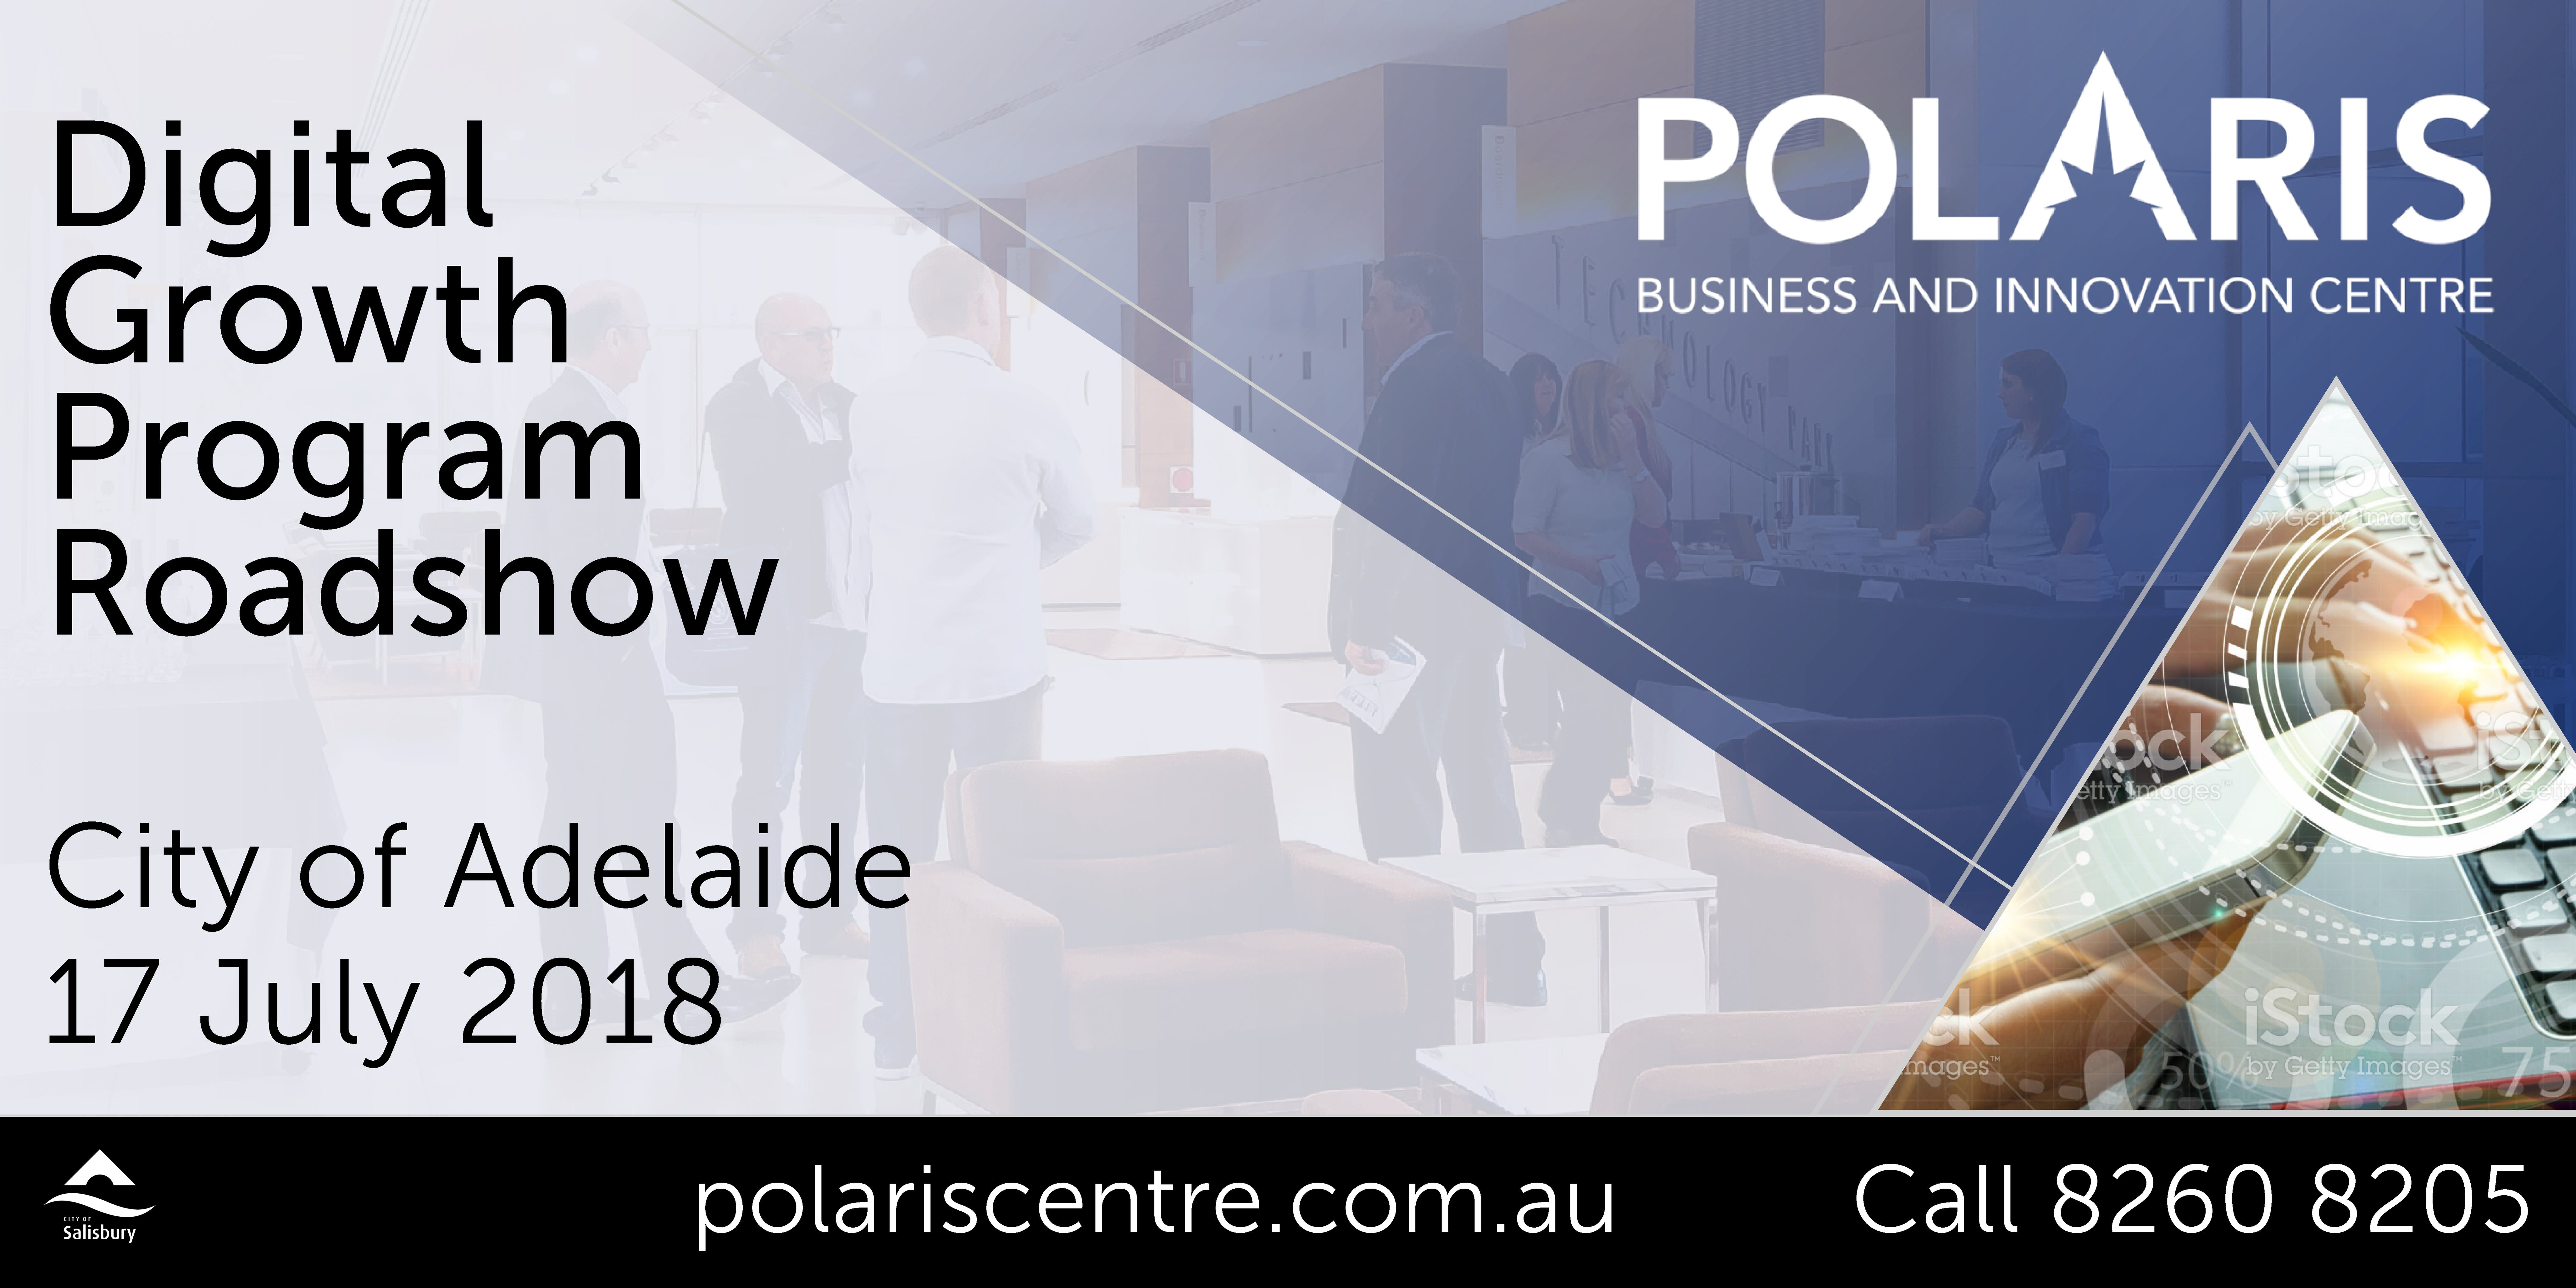 Digital Growth Roadshow - City of Adelaide - 17 July 2018